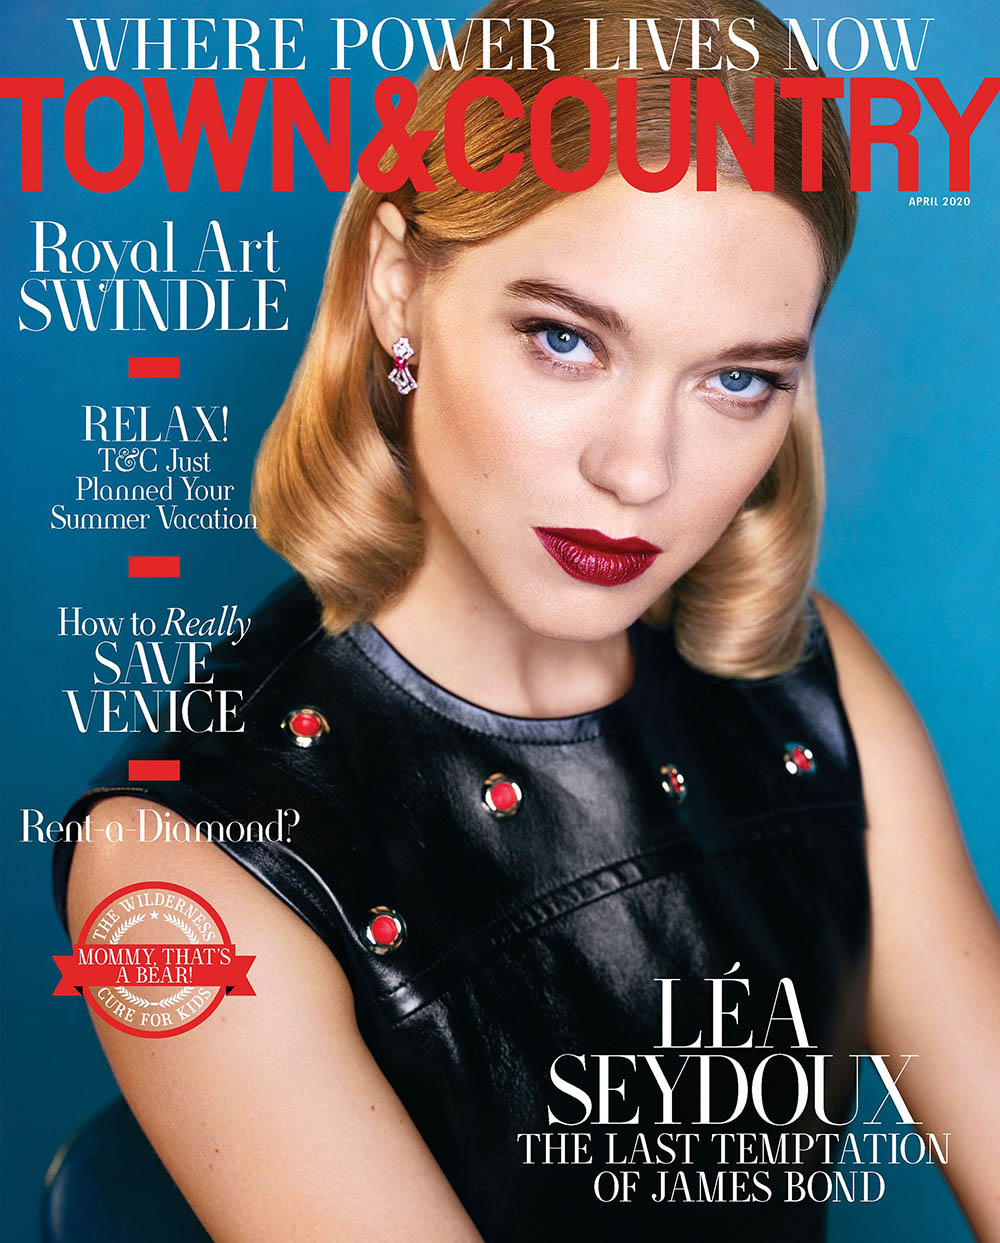 Léa Seydoux covers Town & Country April 2020 by Max Vadukul